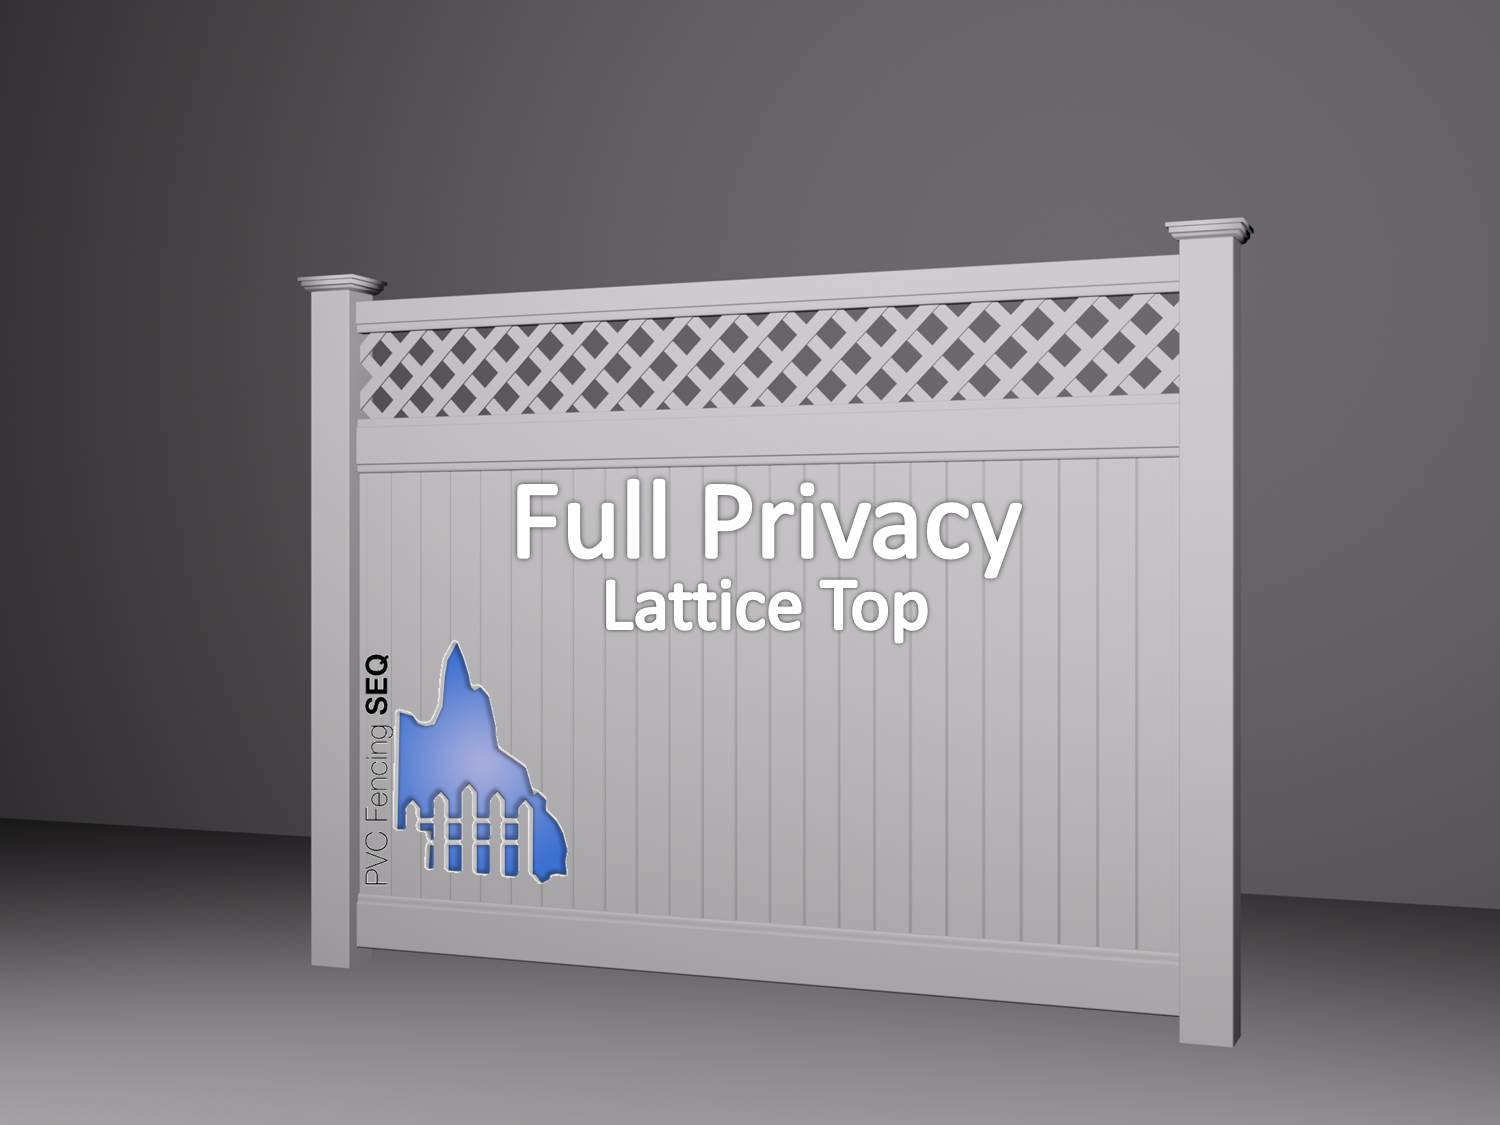 Full Privacy - Lattice Top.jpg